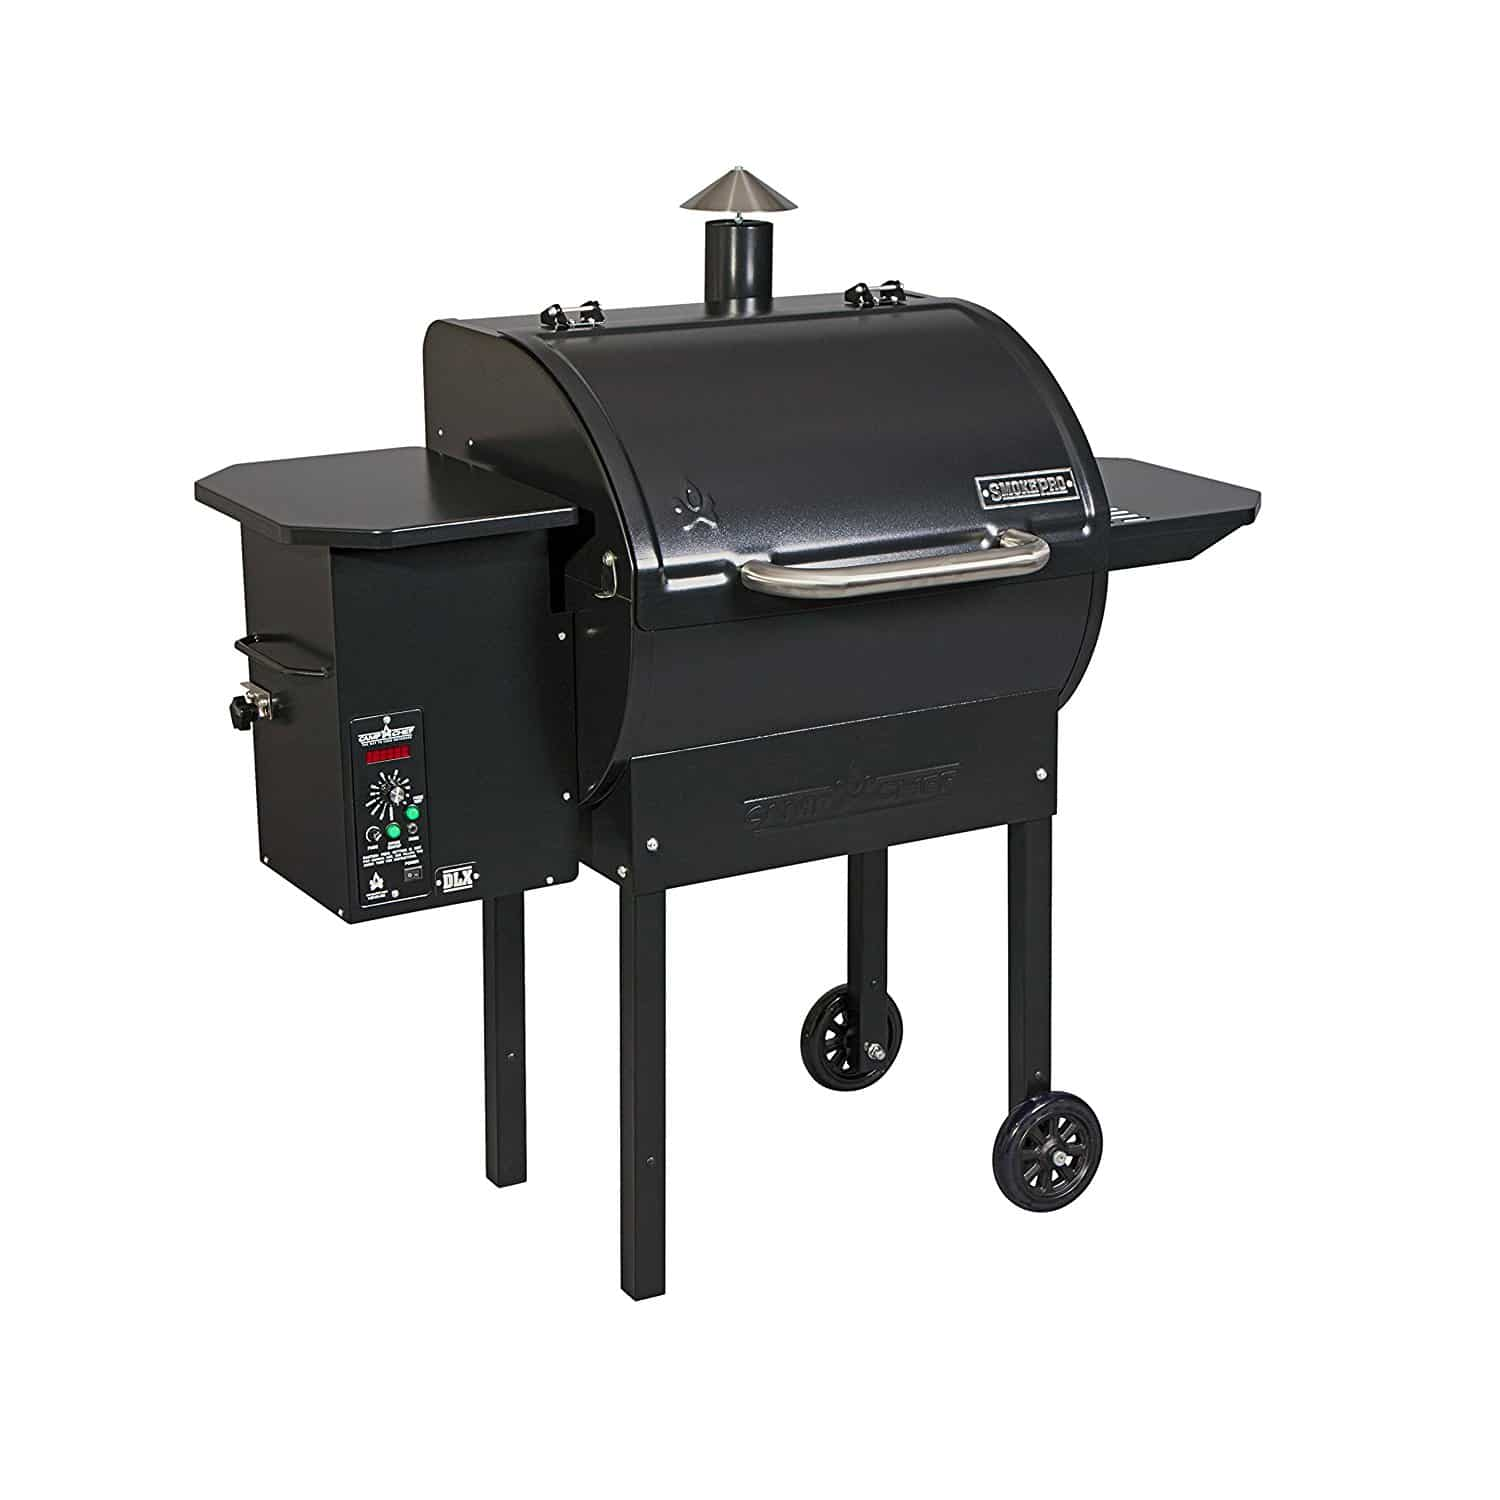 Camp Chef Pellet Grill and Smoker Review